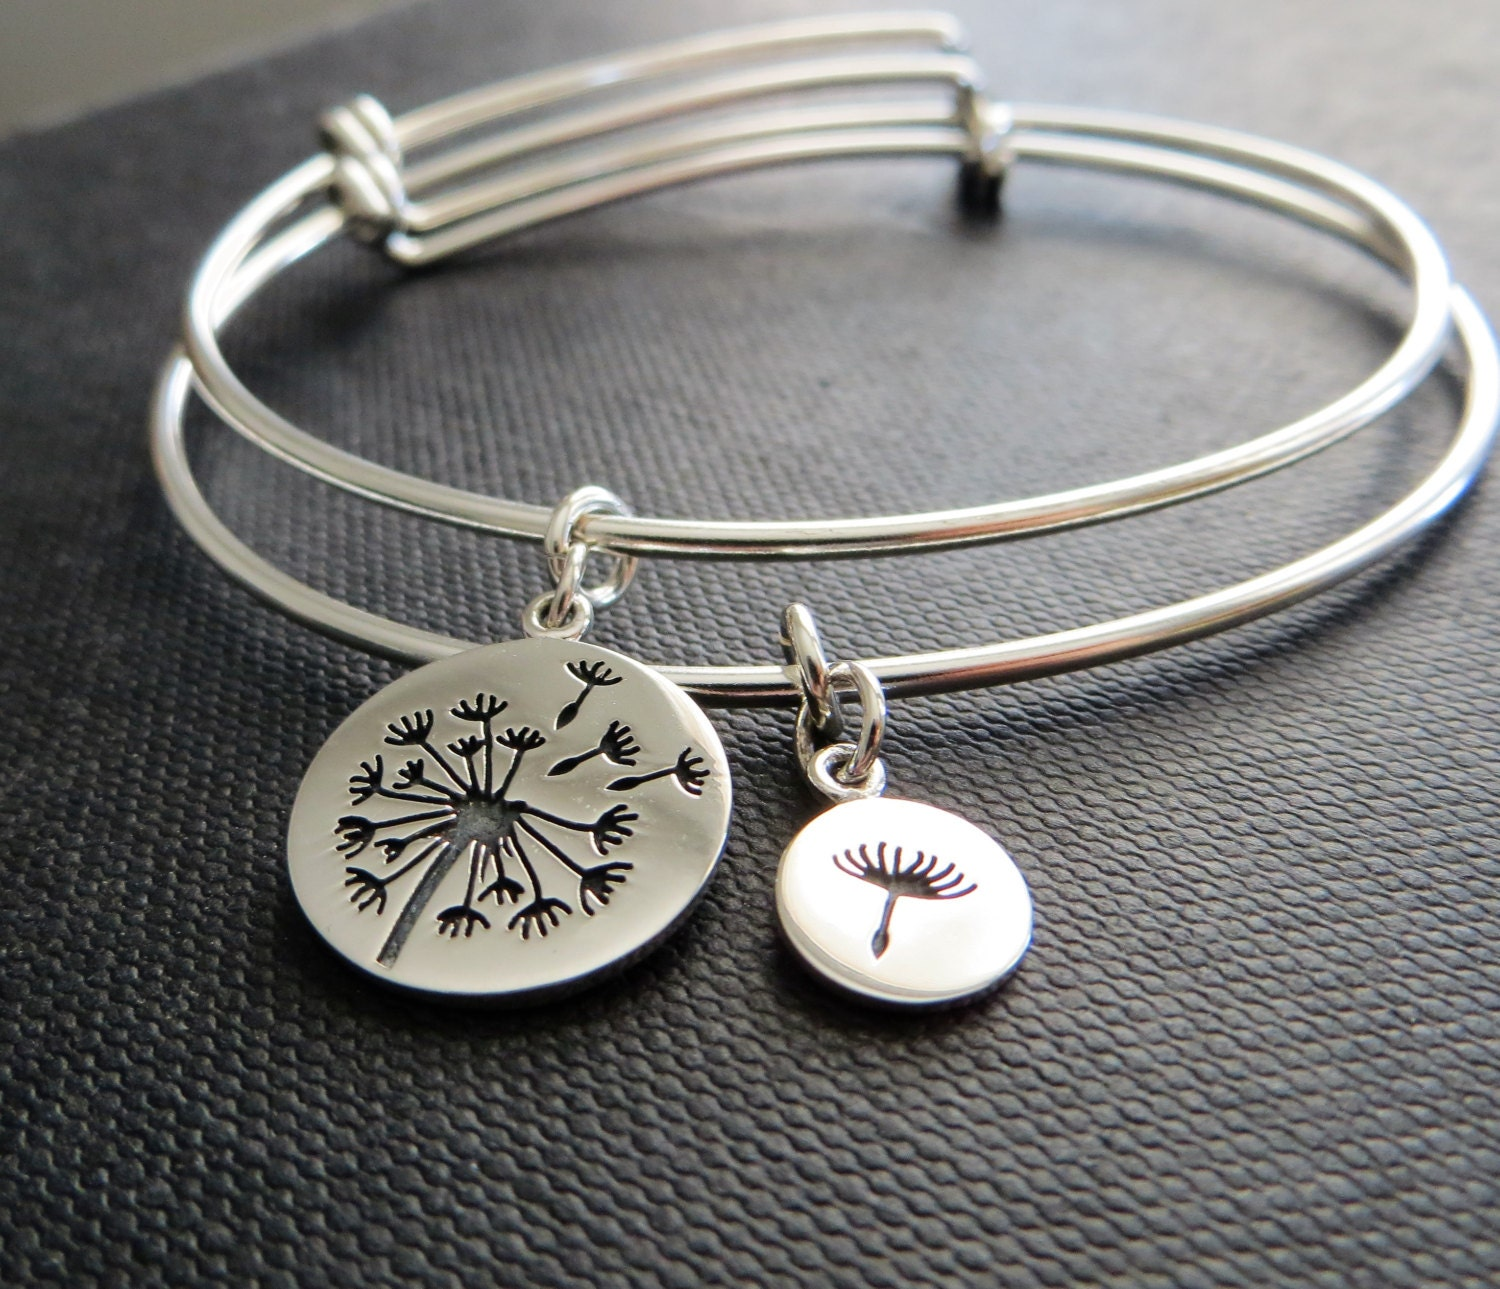 pin bracelet threesistersjewelry personalized bangle day bangles ina ideas gift personalised mothers stacking wearyourstory bracelets wedding